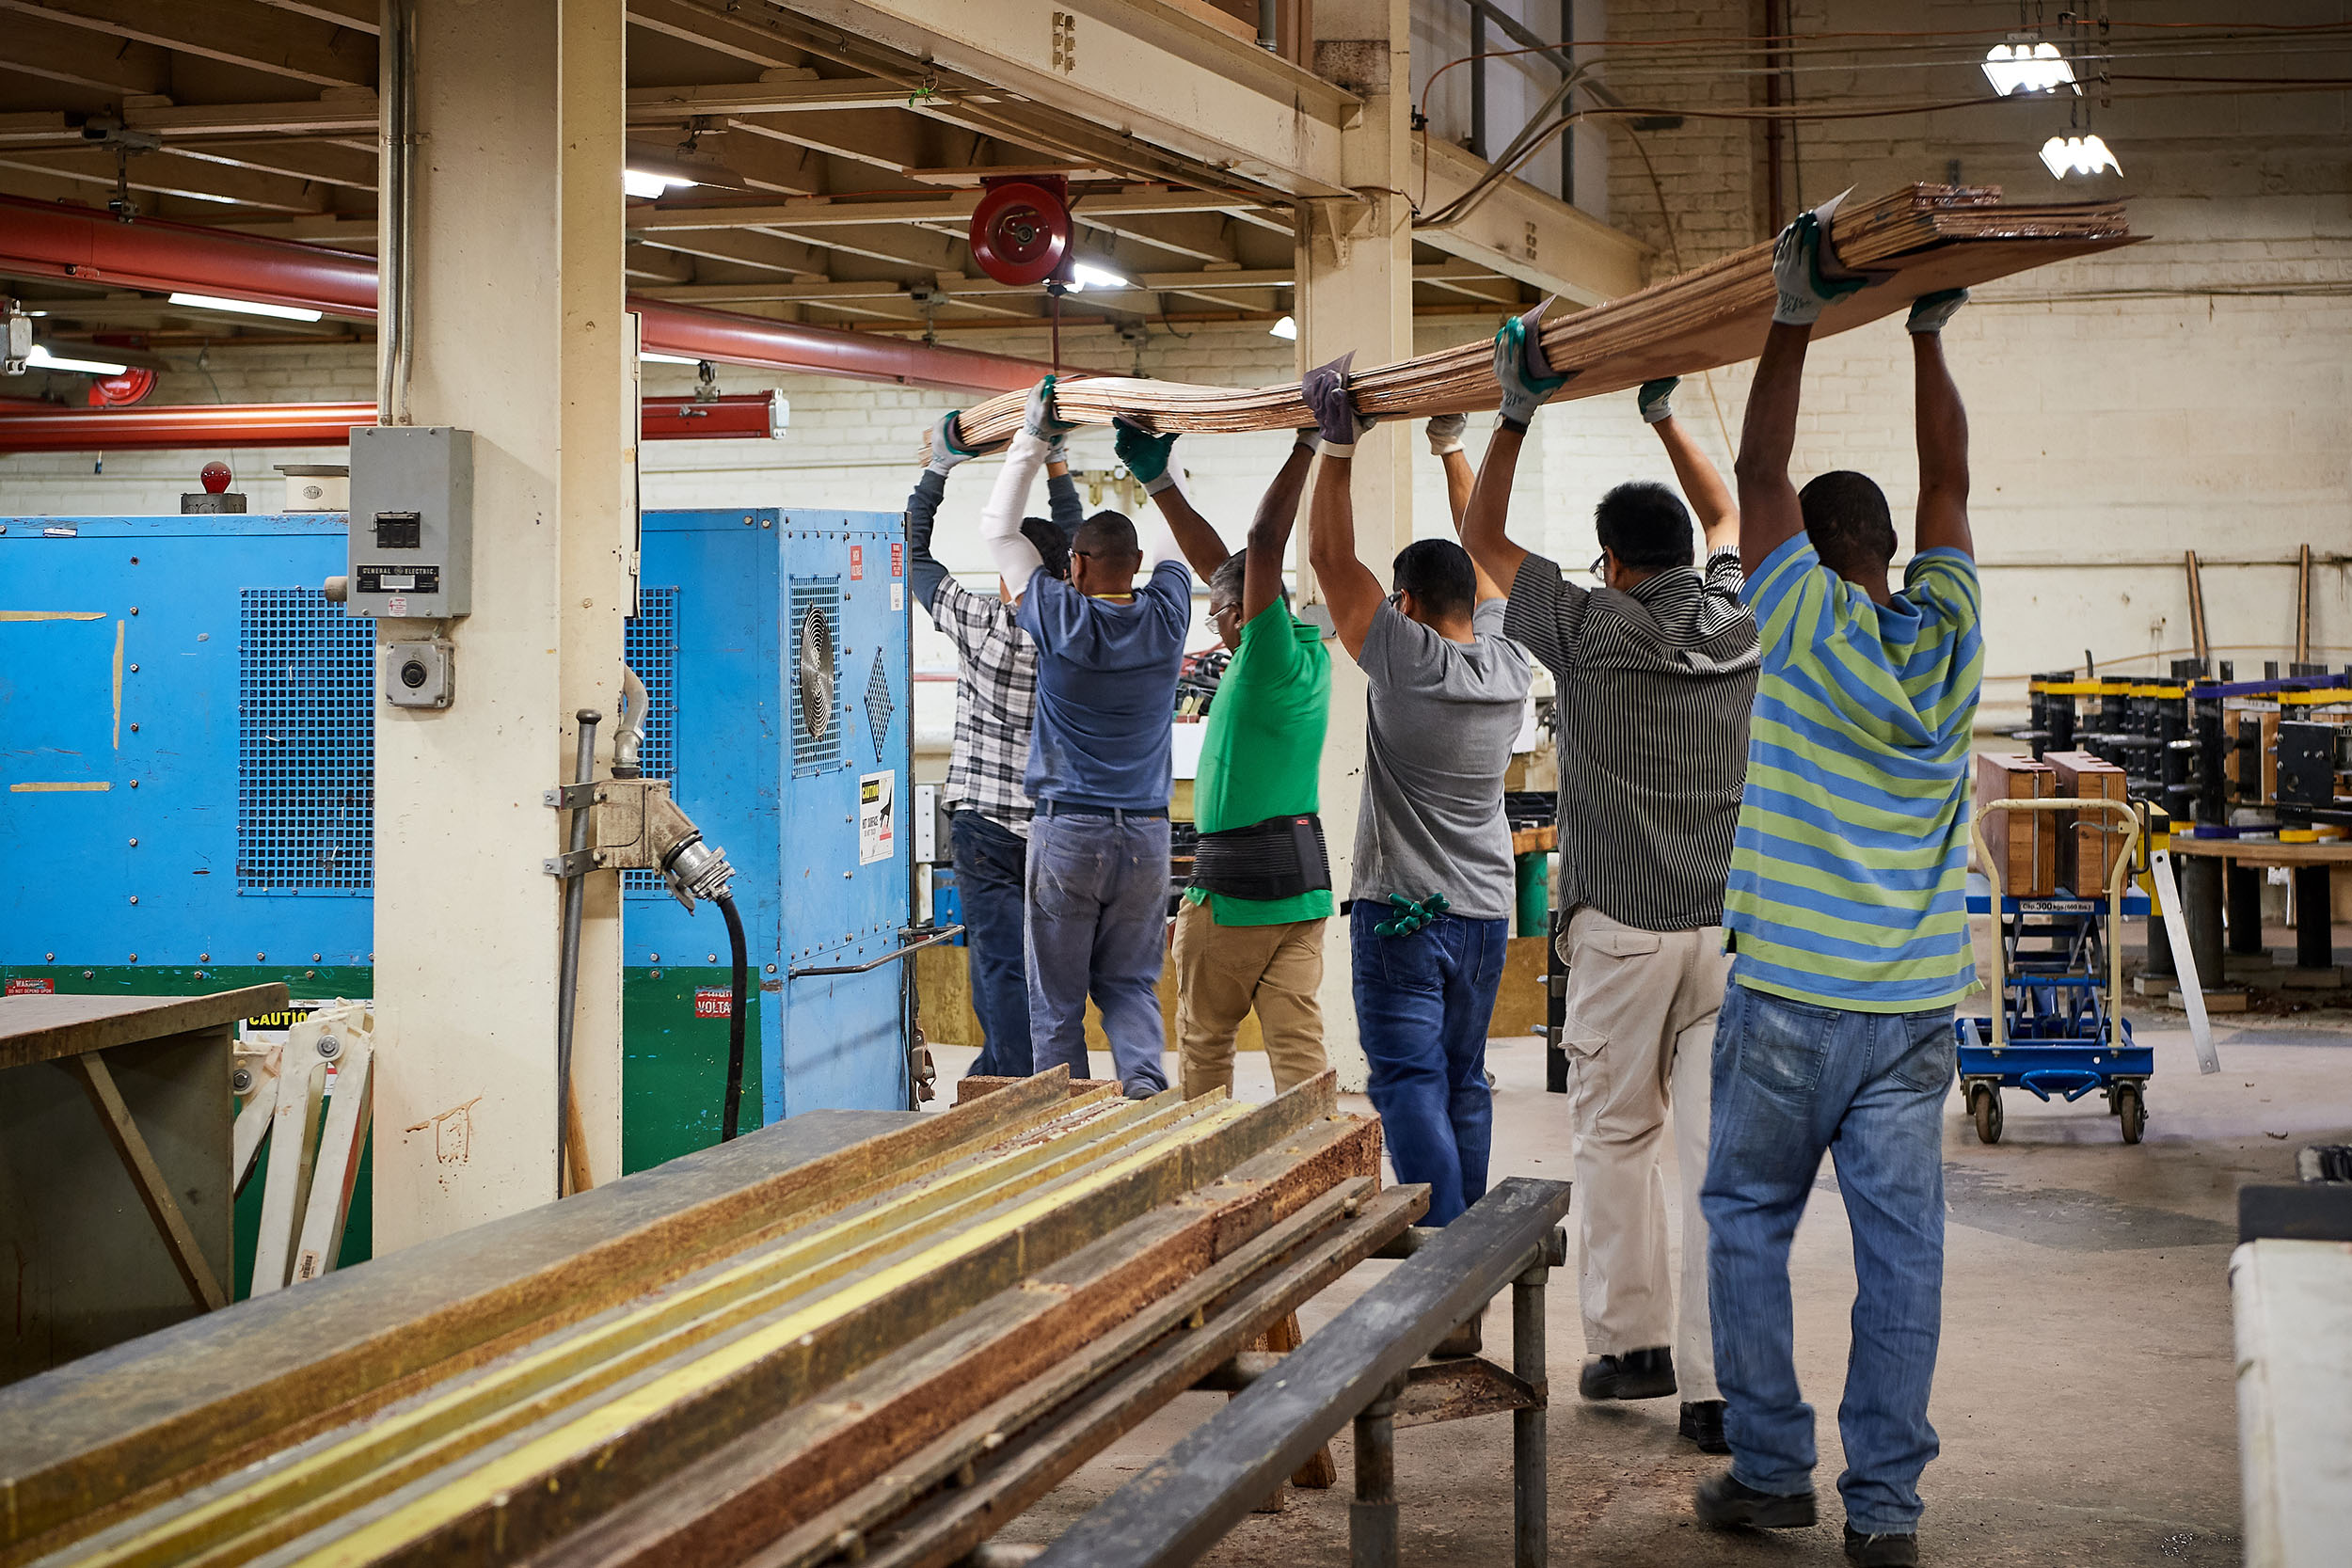 Craftsmen carry a laminate book of wood strips to a bending jig for forming a piano rim at the Steinway & Sons factory